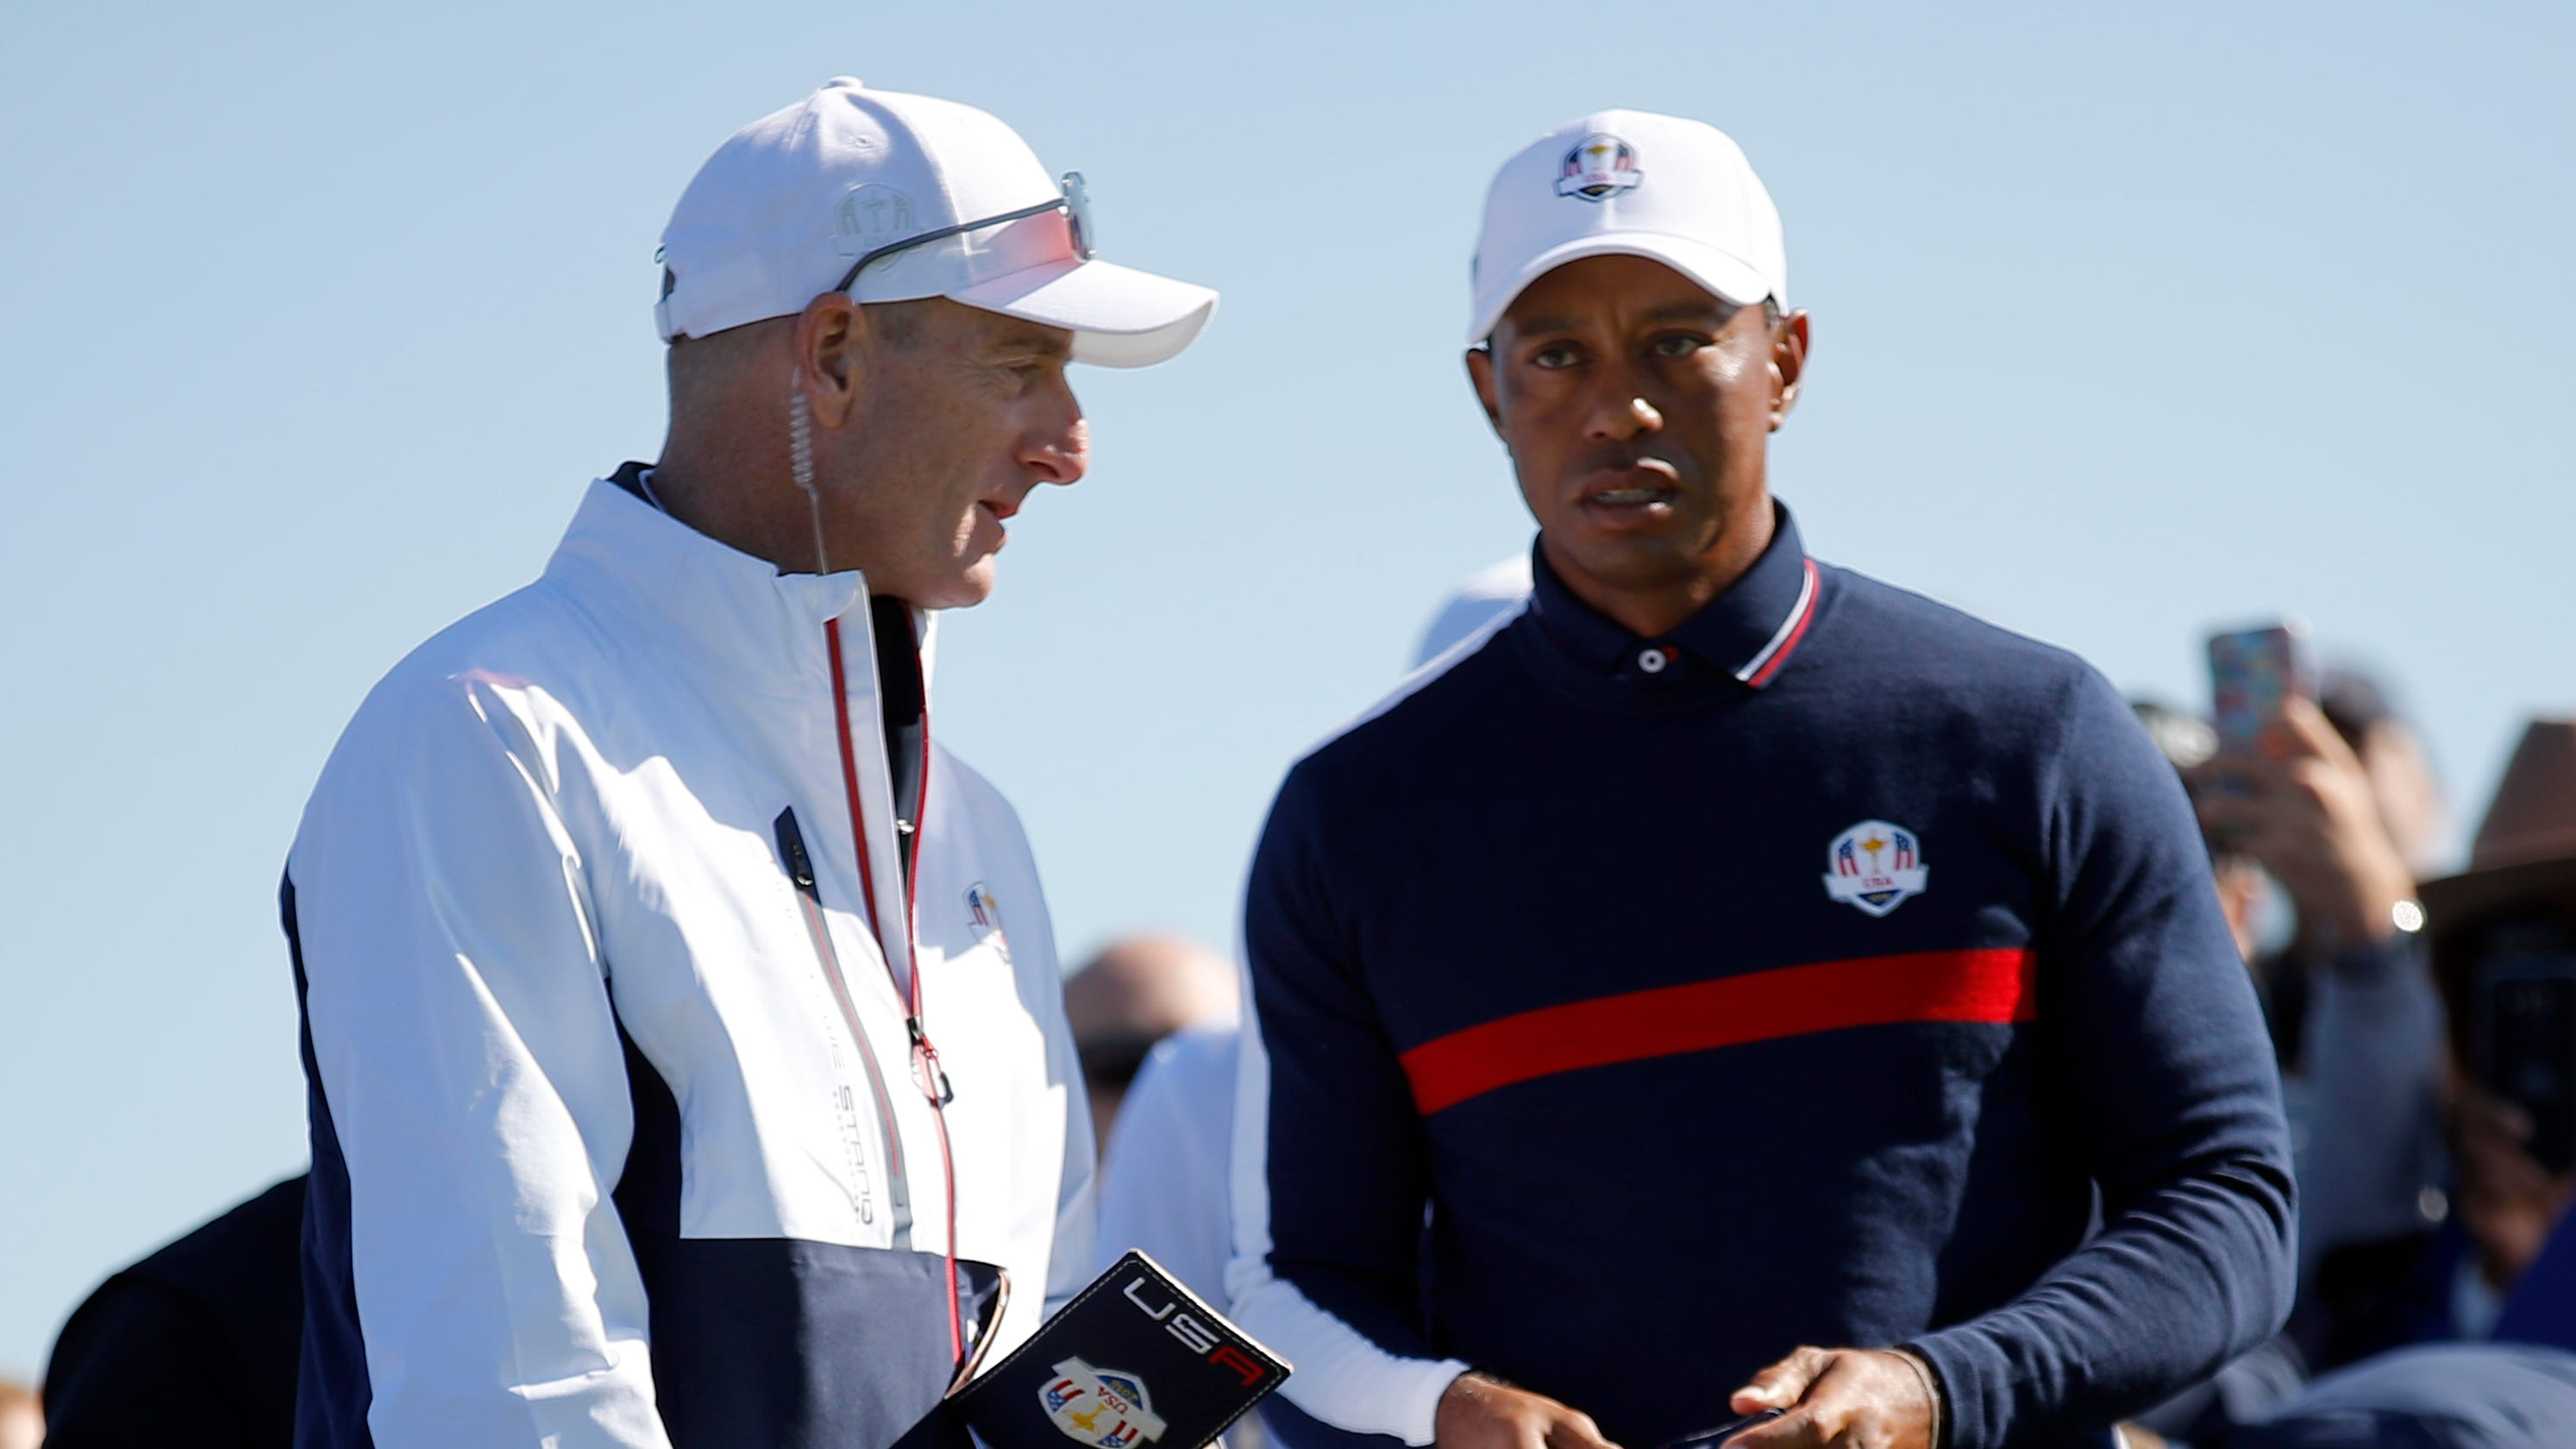 13095fc6f8 Ryder Cup 2018: Tiger Woods with Phil Mickelson? U.S. shows off pods